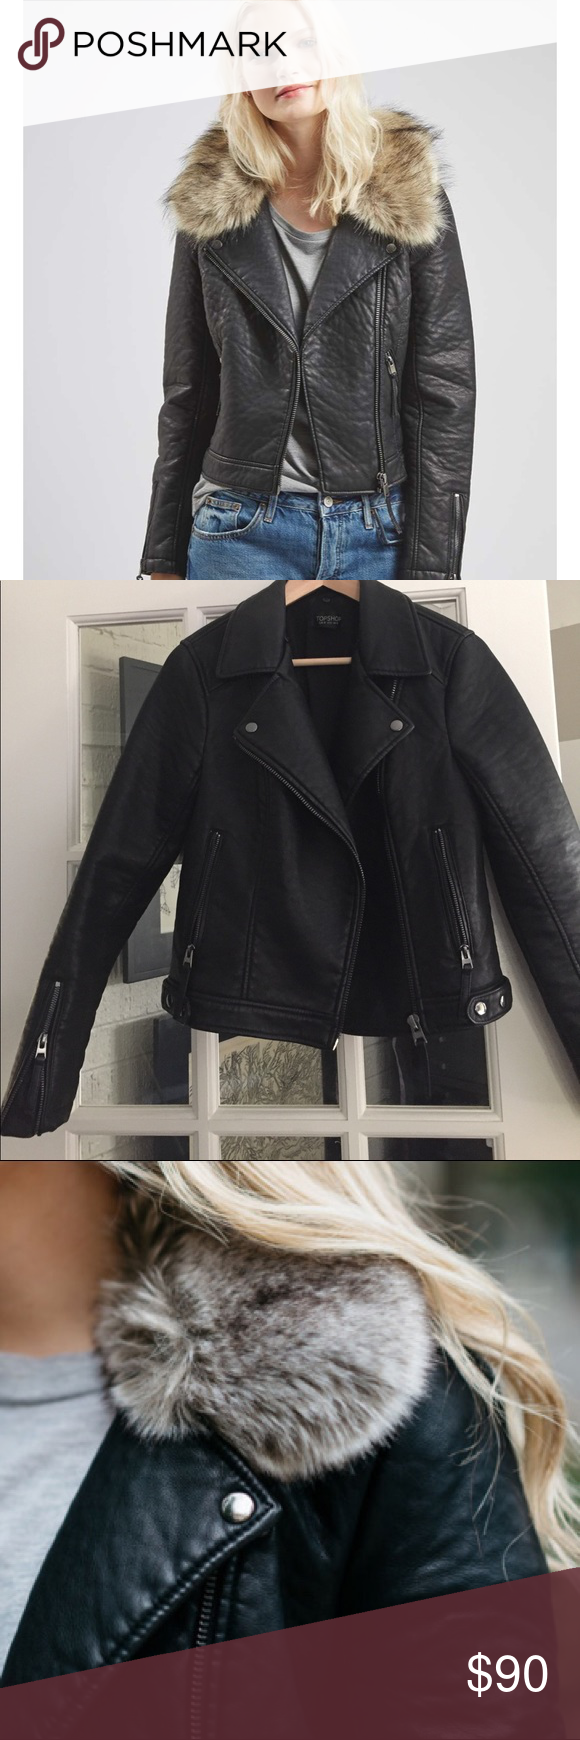 faux leather jacket with faux fur collar Faux